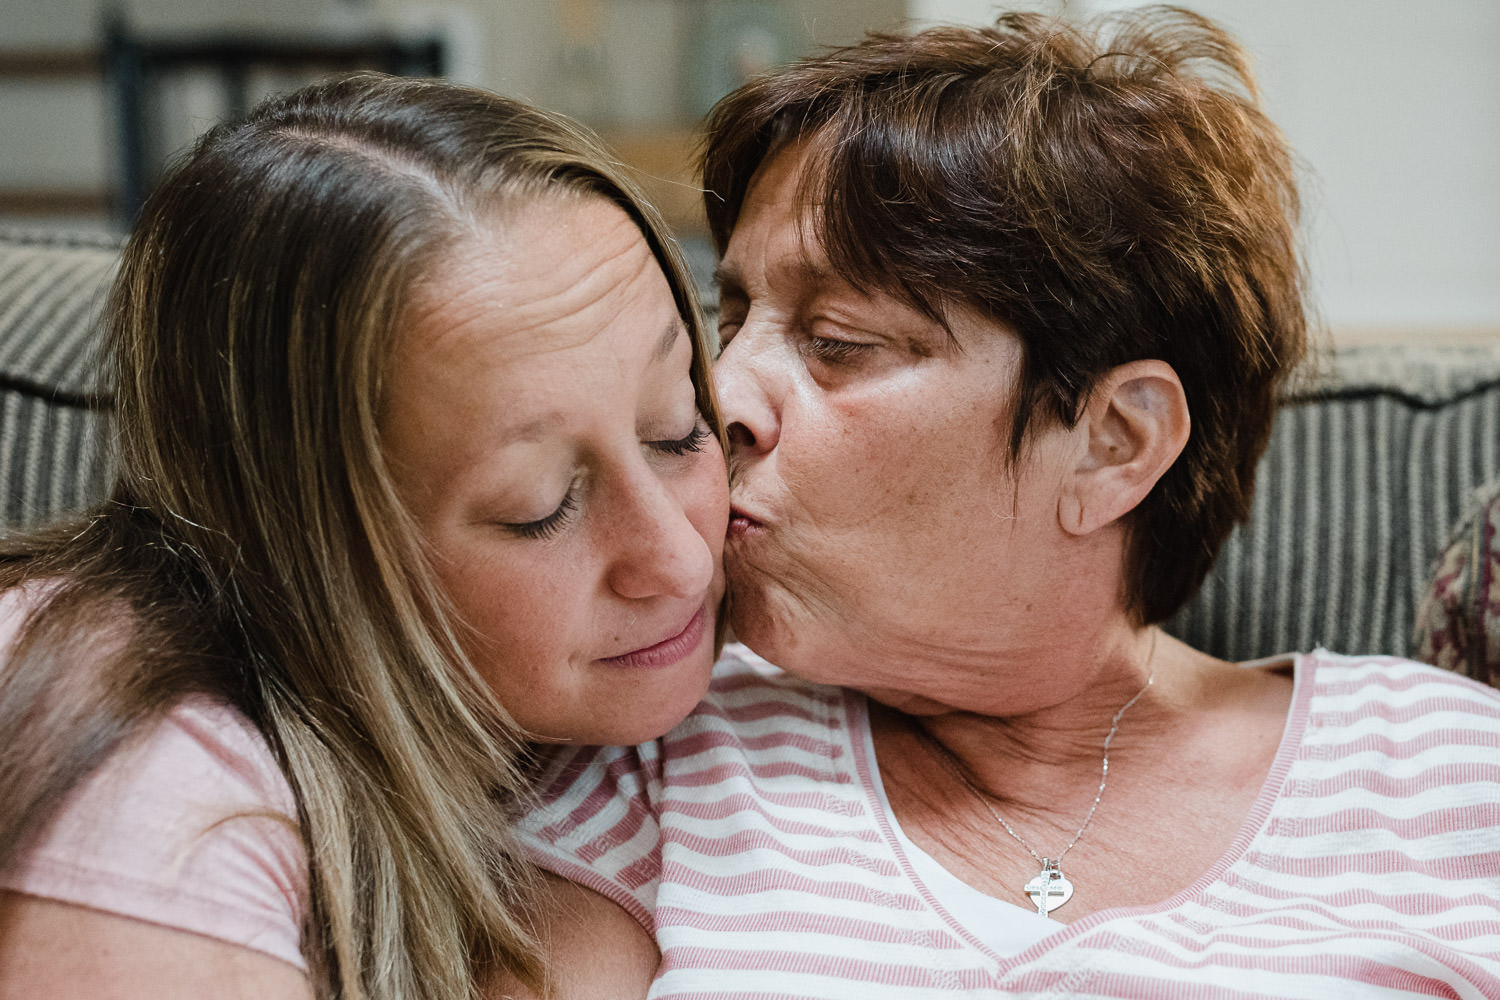 A mother kisses her daughter.